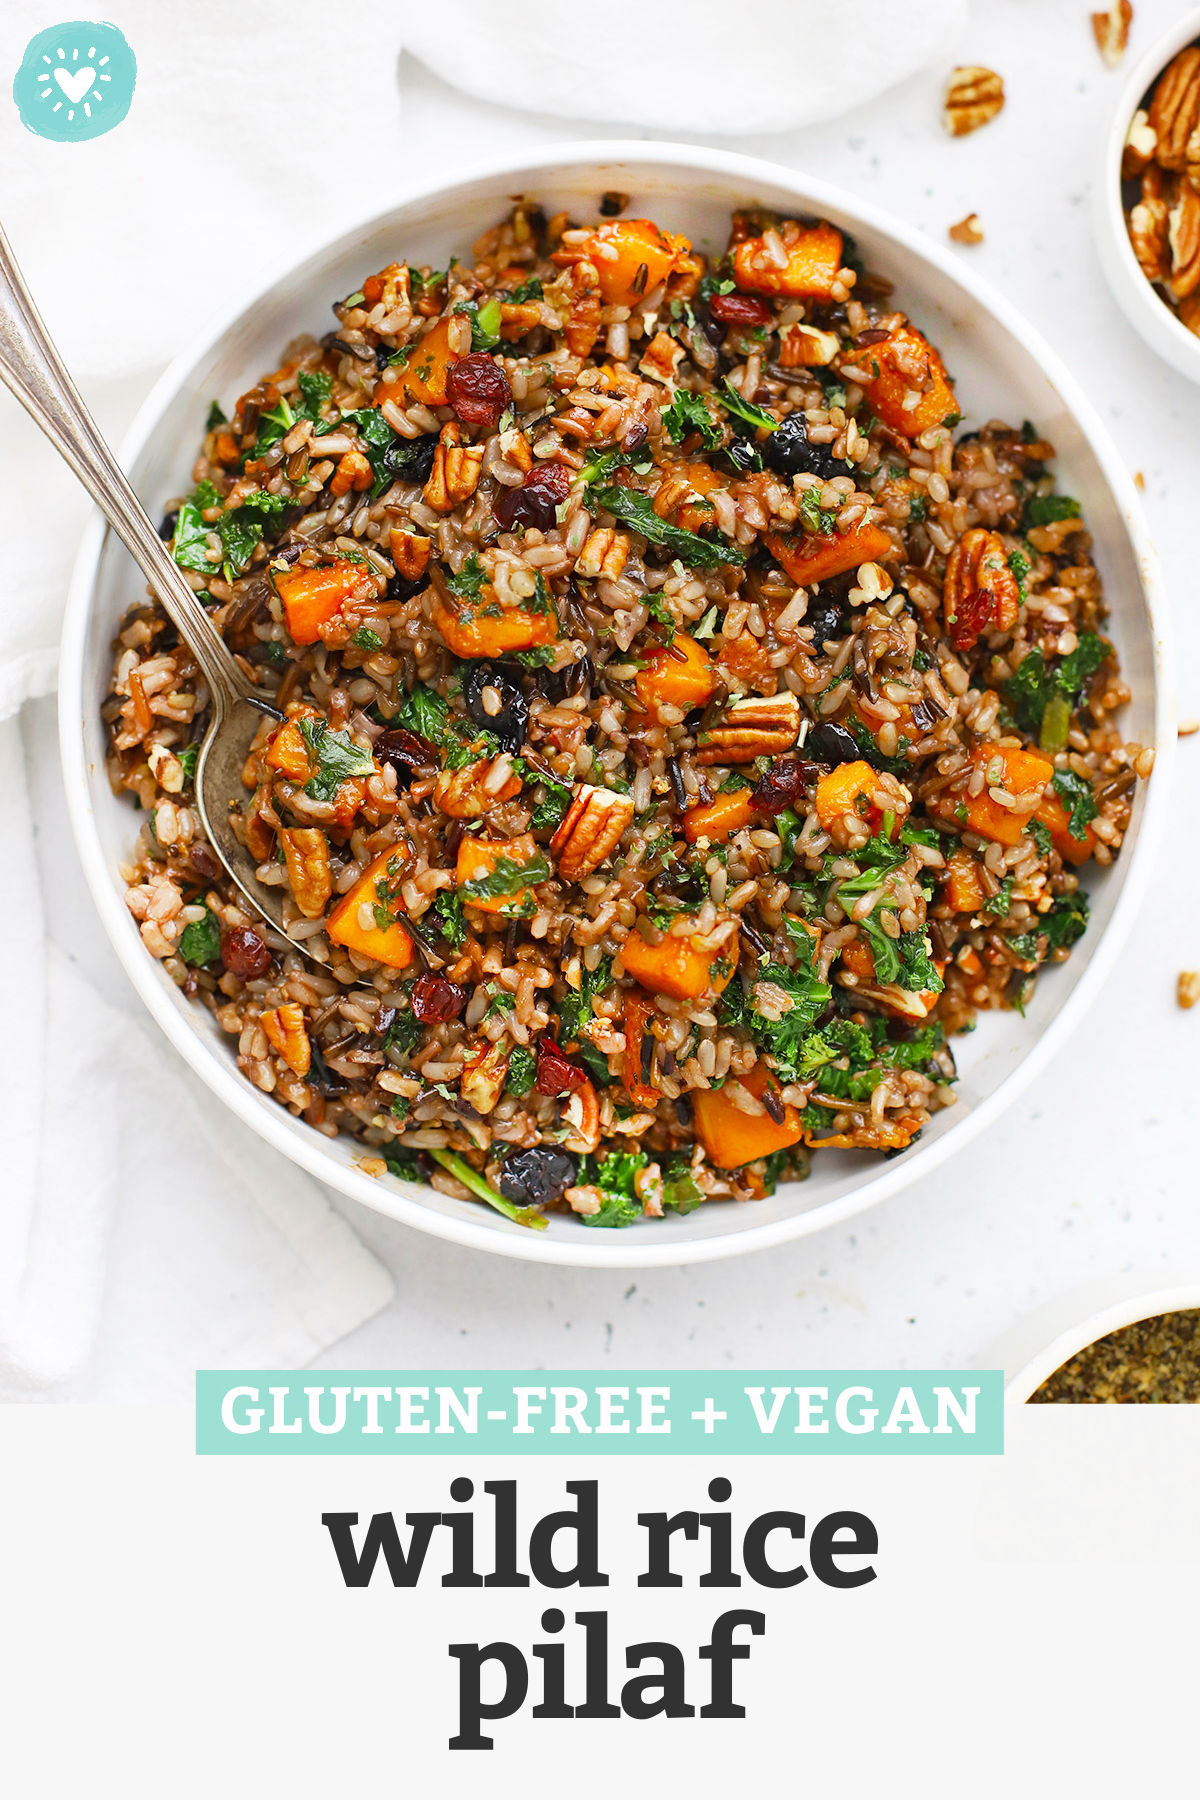 Wild Rice Pilaf with Butternut Squash - Wild Rice Pilaf with butternut squash, pecans, cranberries, and more! (Gluten-Free + Vegan) // Wild Rice Squash Pilaf // Wild Rice Squash Salad // Wild Rice Stuffing // Vegan Thanksgiving Recipes // Thanksgiving Side Dish #glutenfree #thanksgiving #sidedish #wildrice #pilaf #vegan